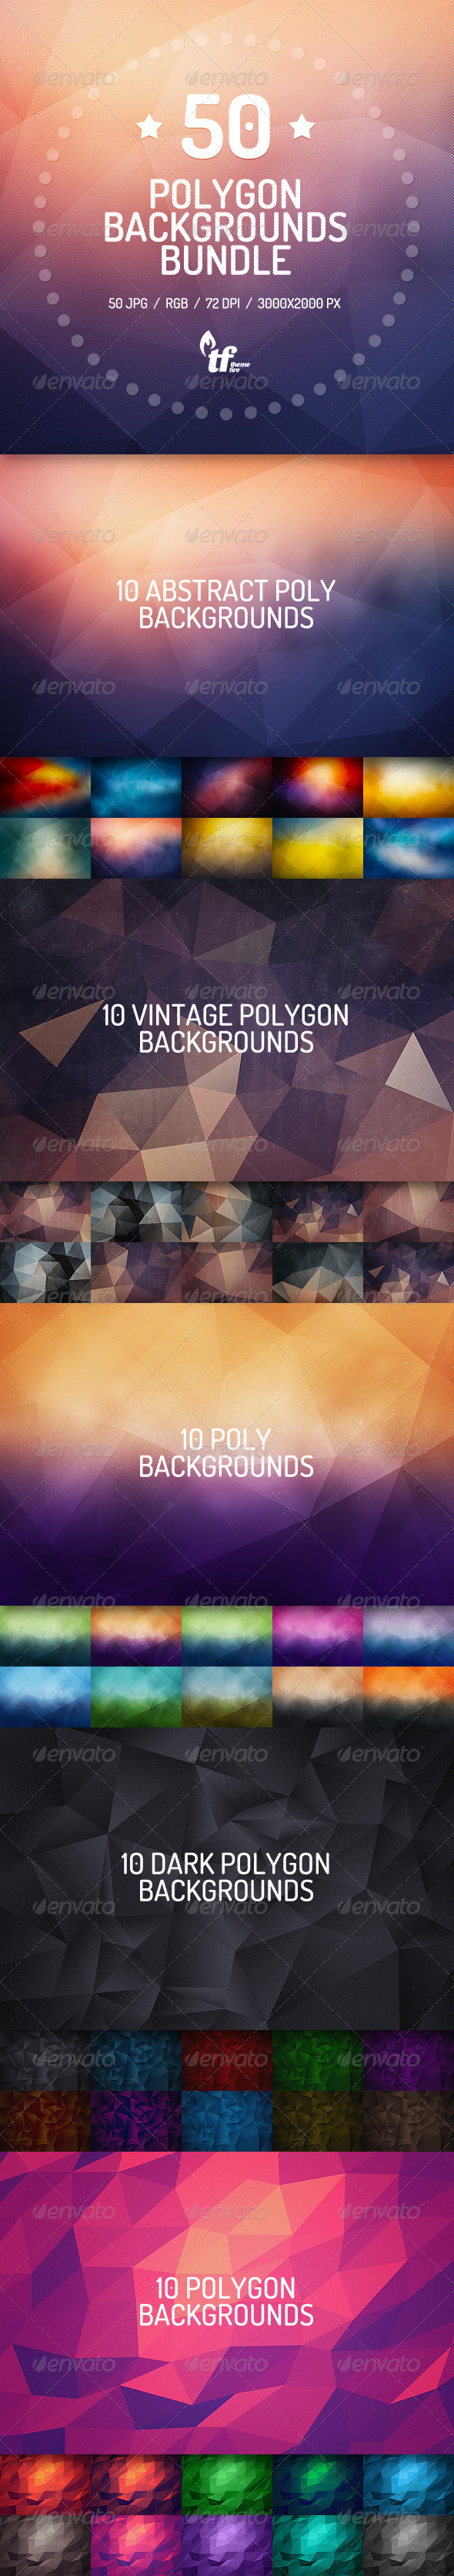 GraphicRiver 50 Polygon Backgrounds Bundle 7939894